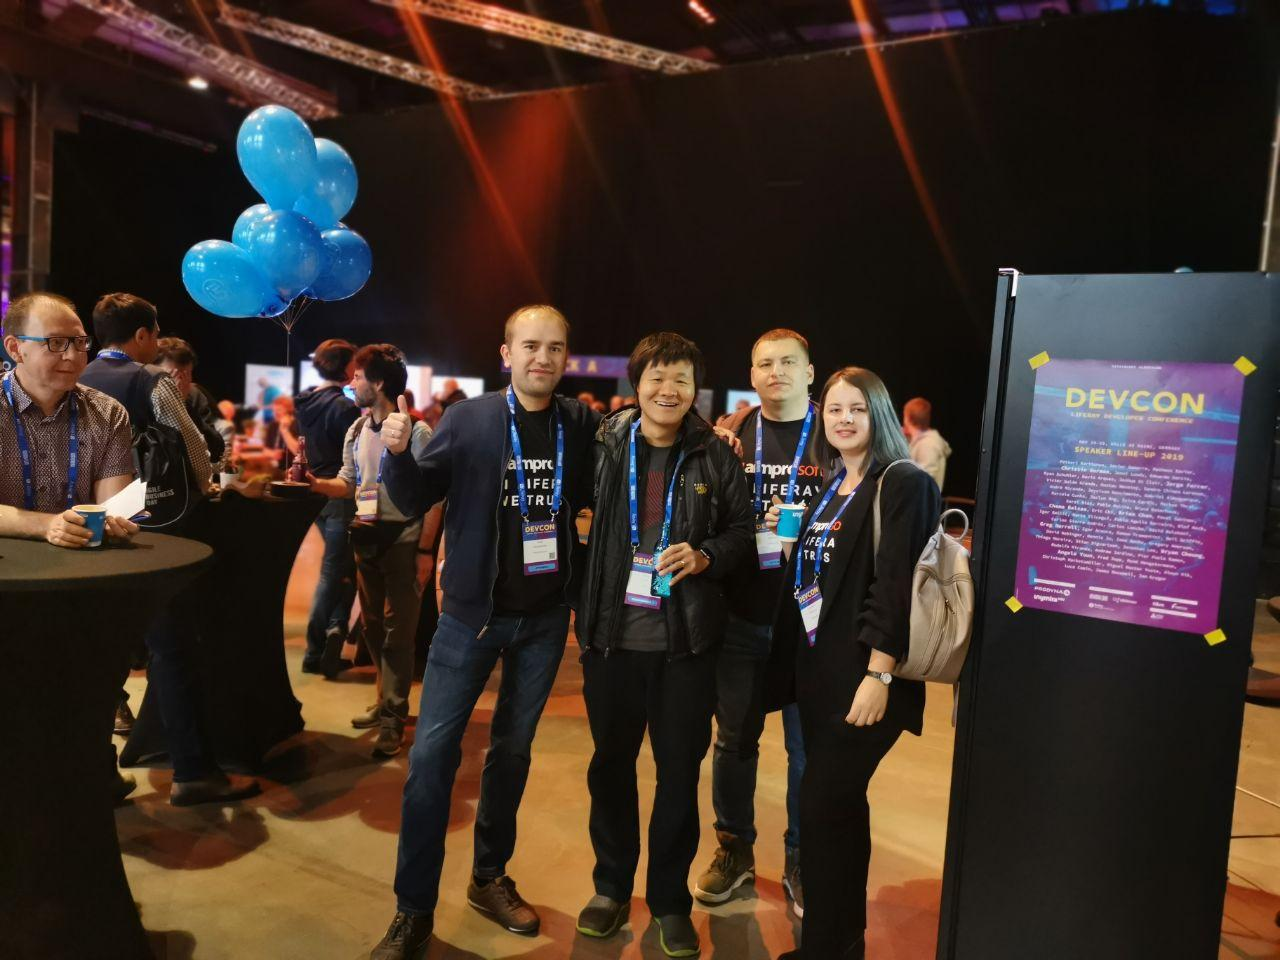 Aimprosoft team in the company of Brian Chan, Chief Software Architect and co-Founder of Liferay